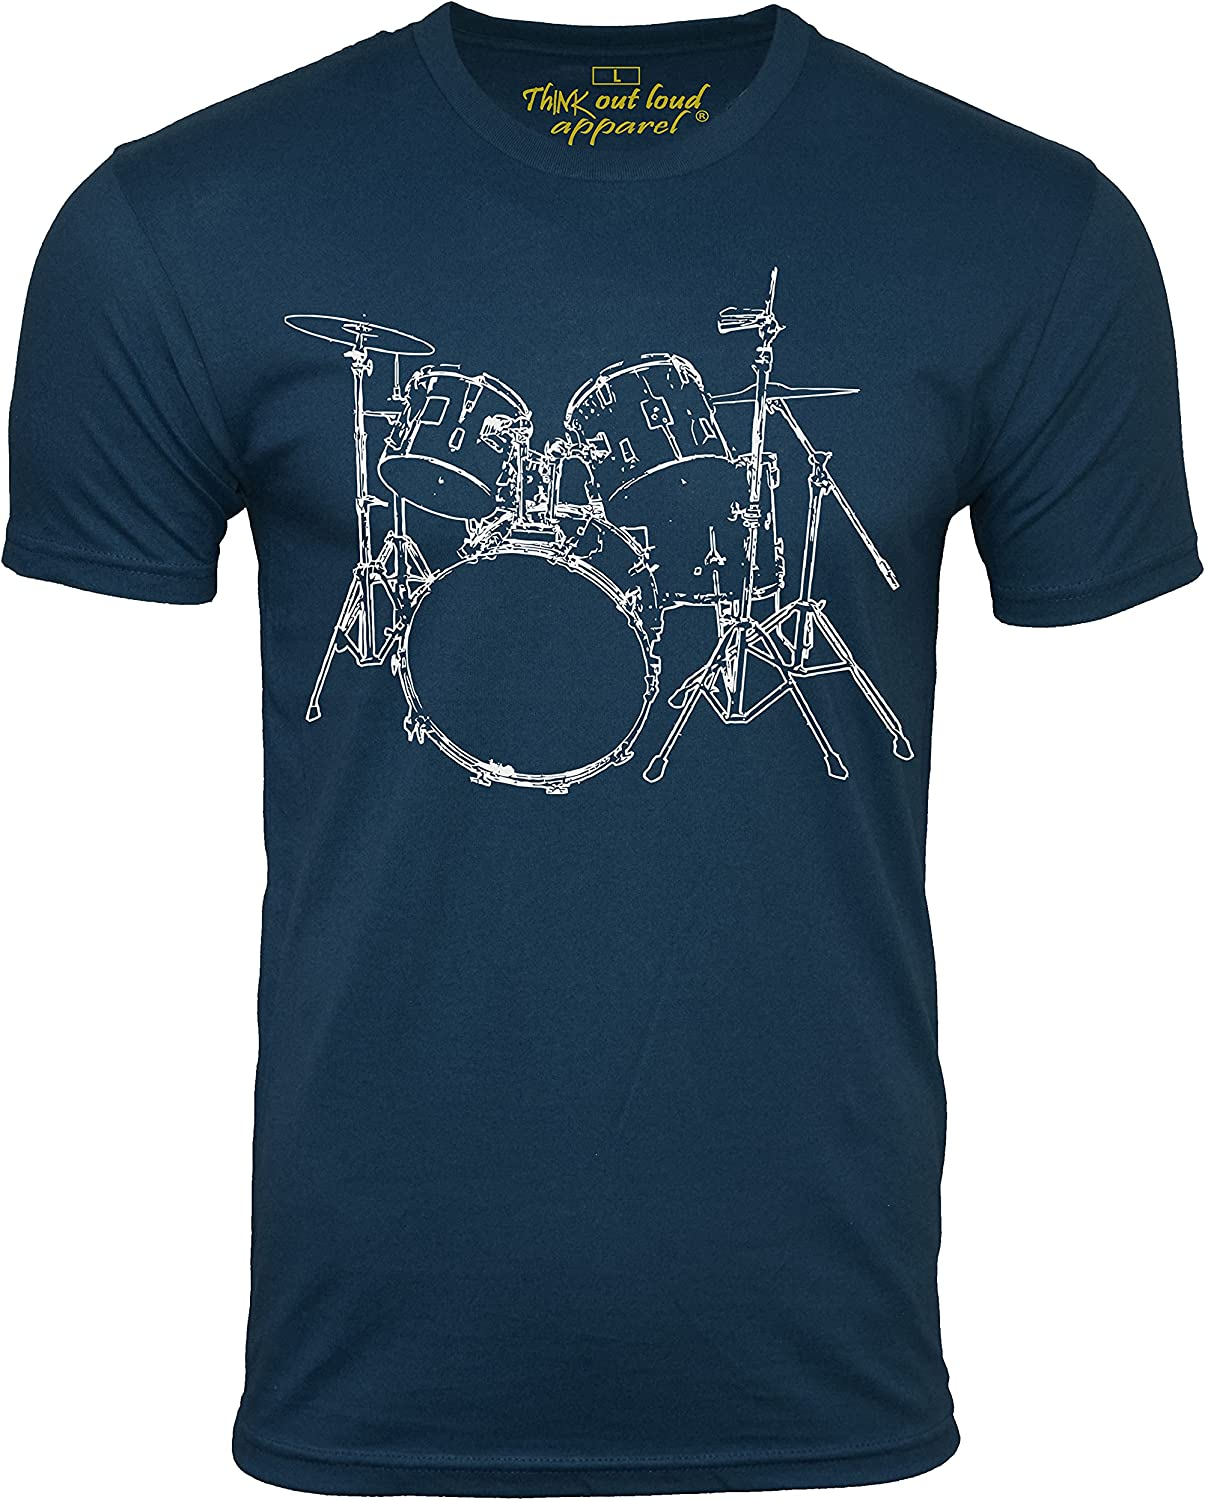 Think Out Loud Manufacturer OFFicial shop Apparel Drums Design T-Shirt Tee Drummer Max 68% OFF Artistic